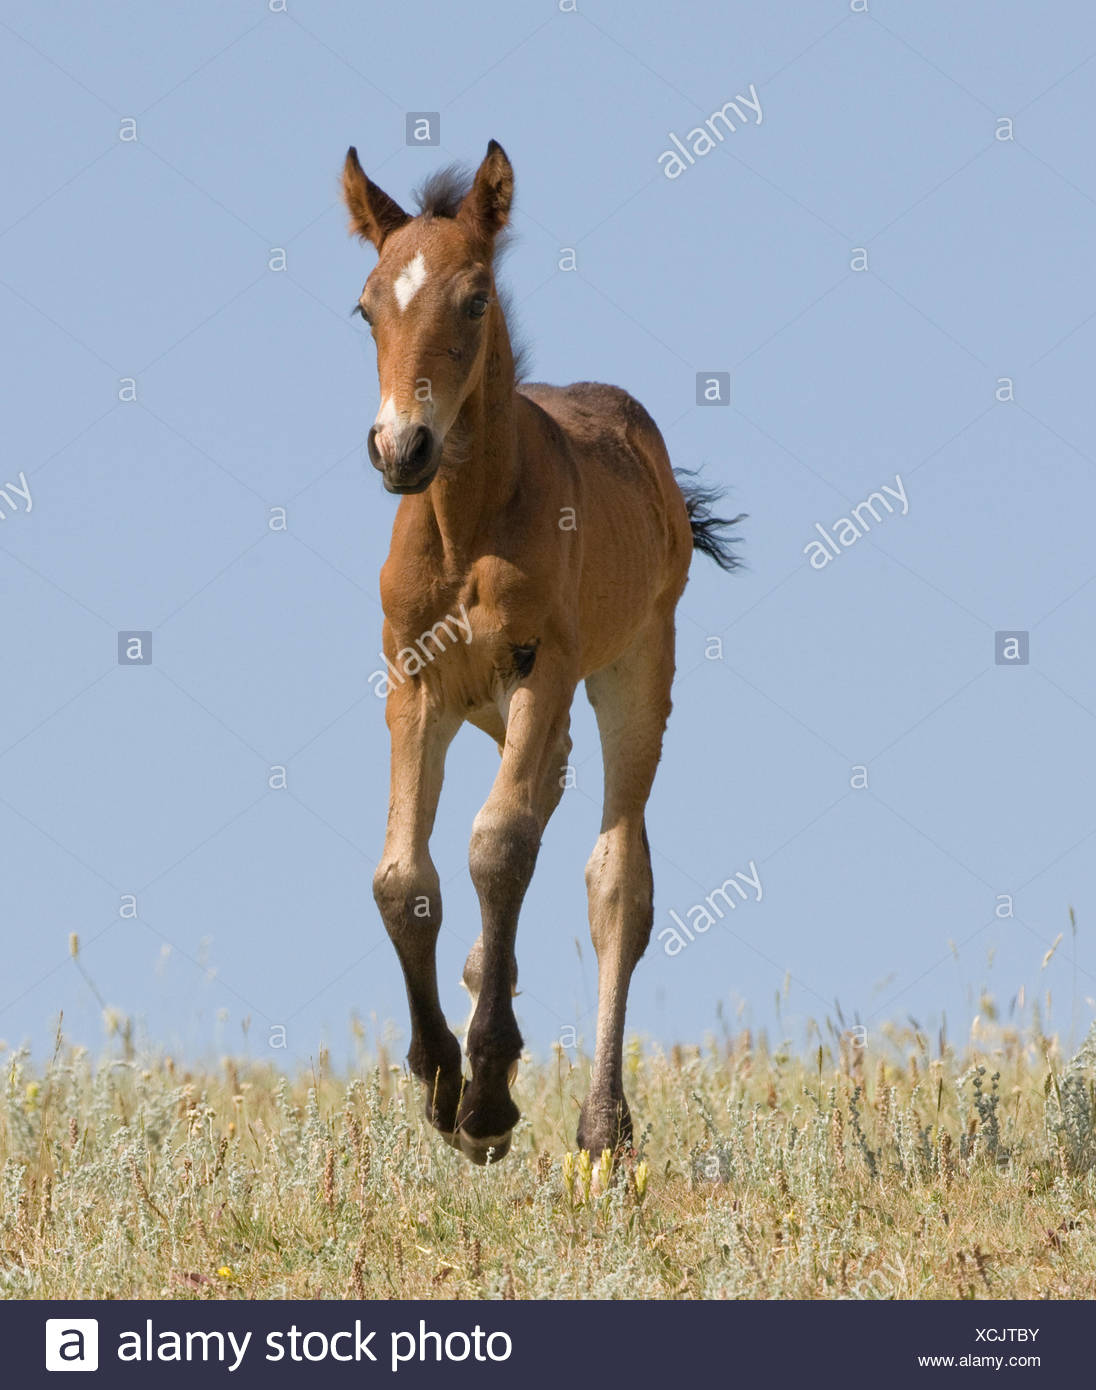 Foal Running Stock Photos & Foal Running Stock Images - Alamy